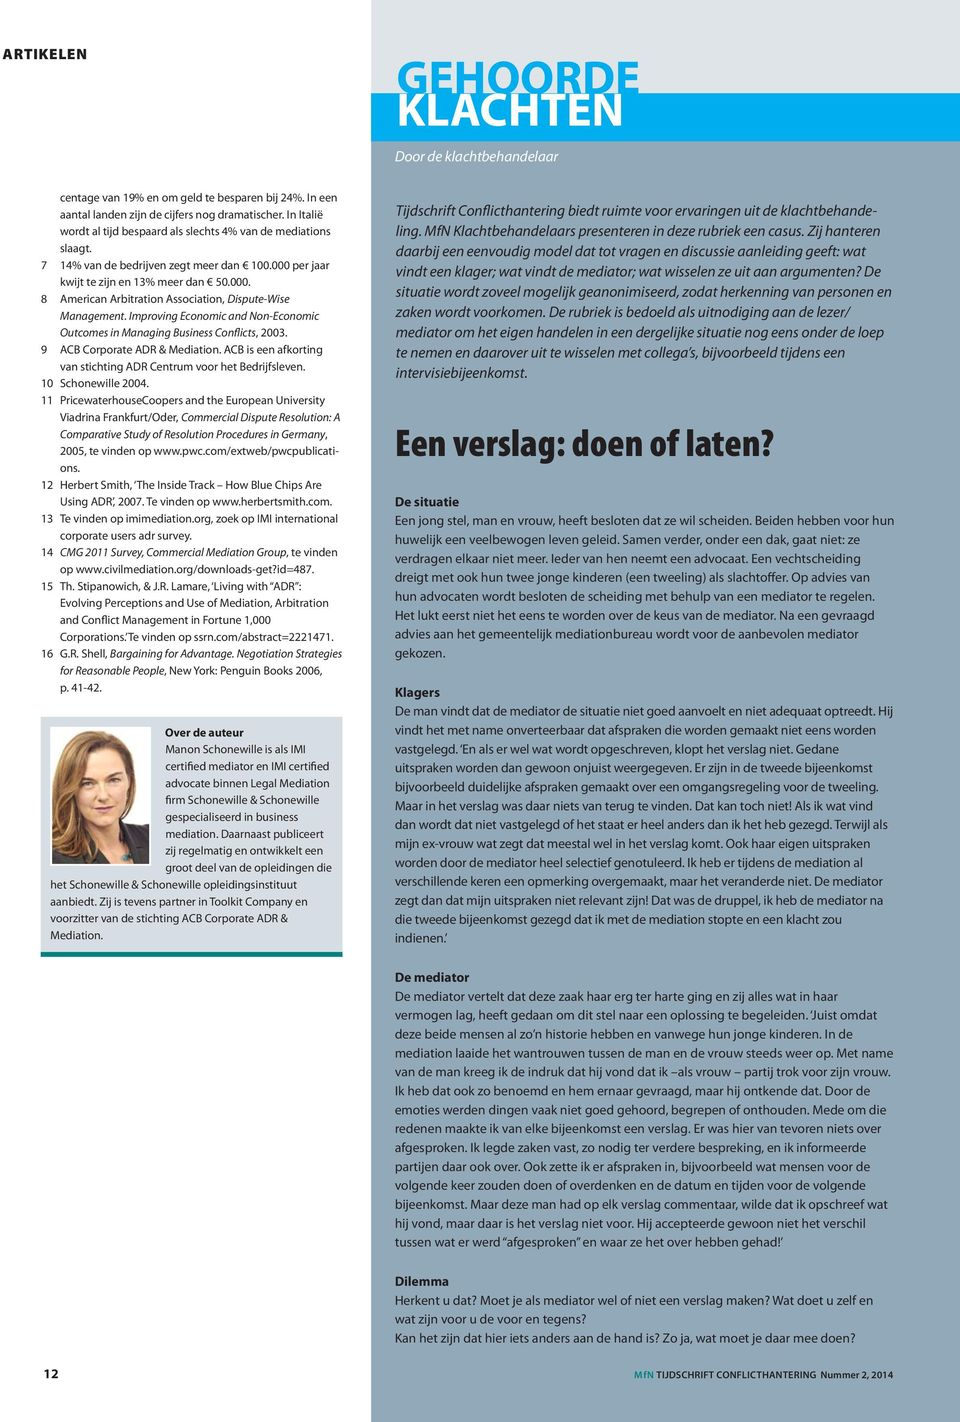 Improving Economic and Non-Economic Outcomes in Managing Business Conflicts, 2003. 9 ACB Corporate ADR & Mediation. ACB is een afkorting van stichting ADR Centrum voor het Bedrijfsleven.